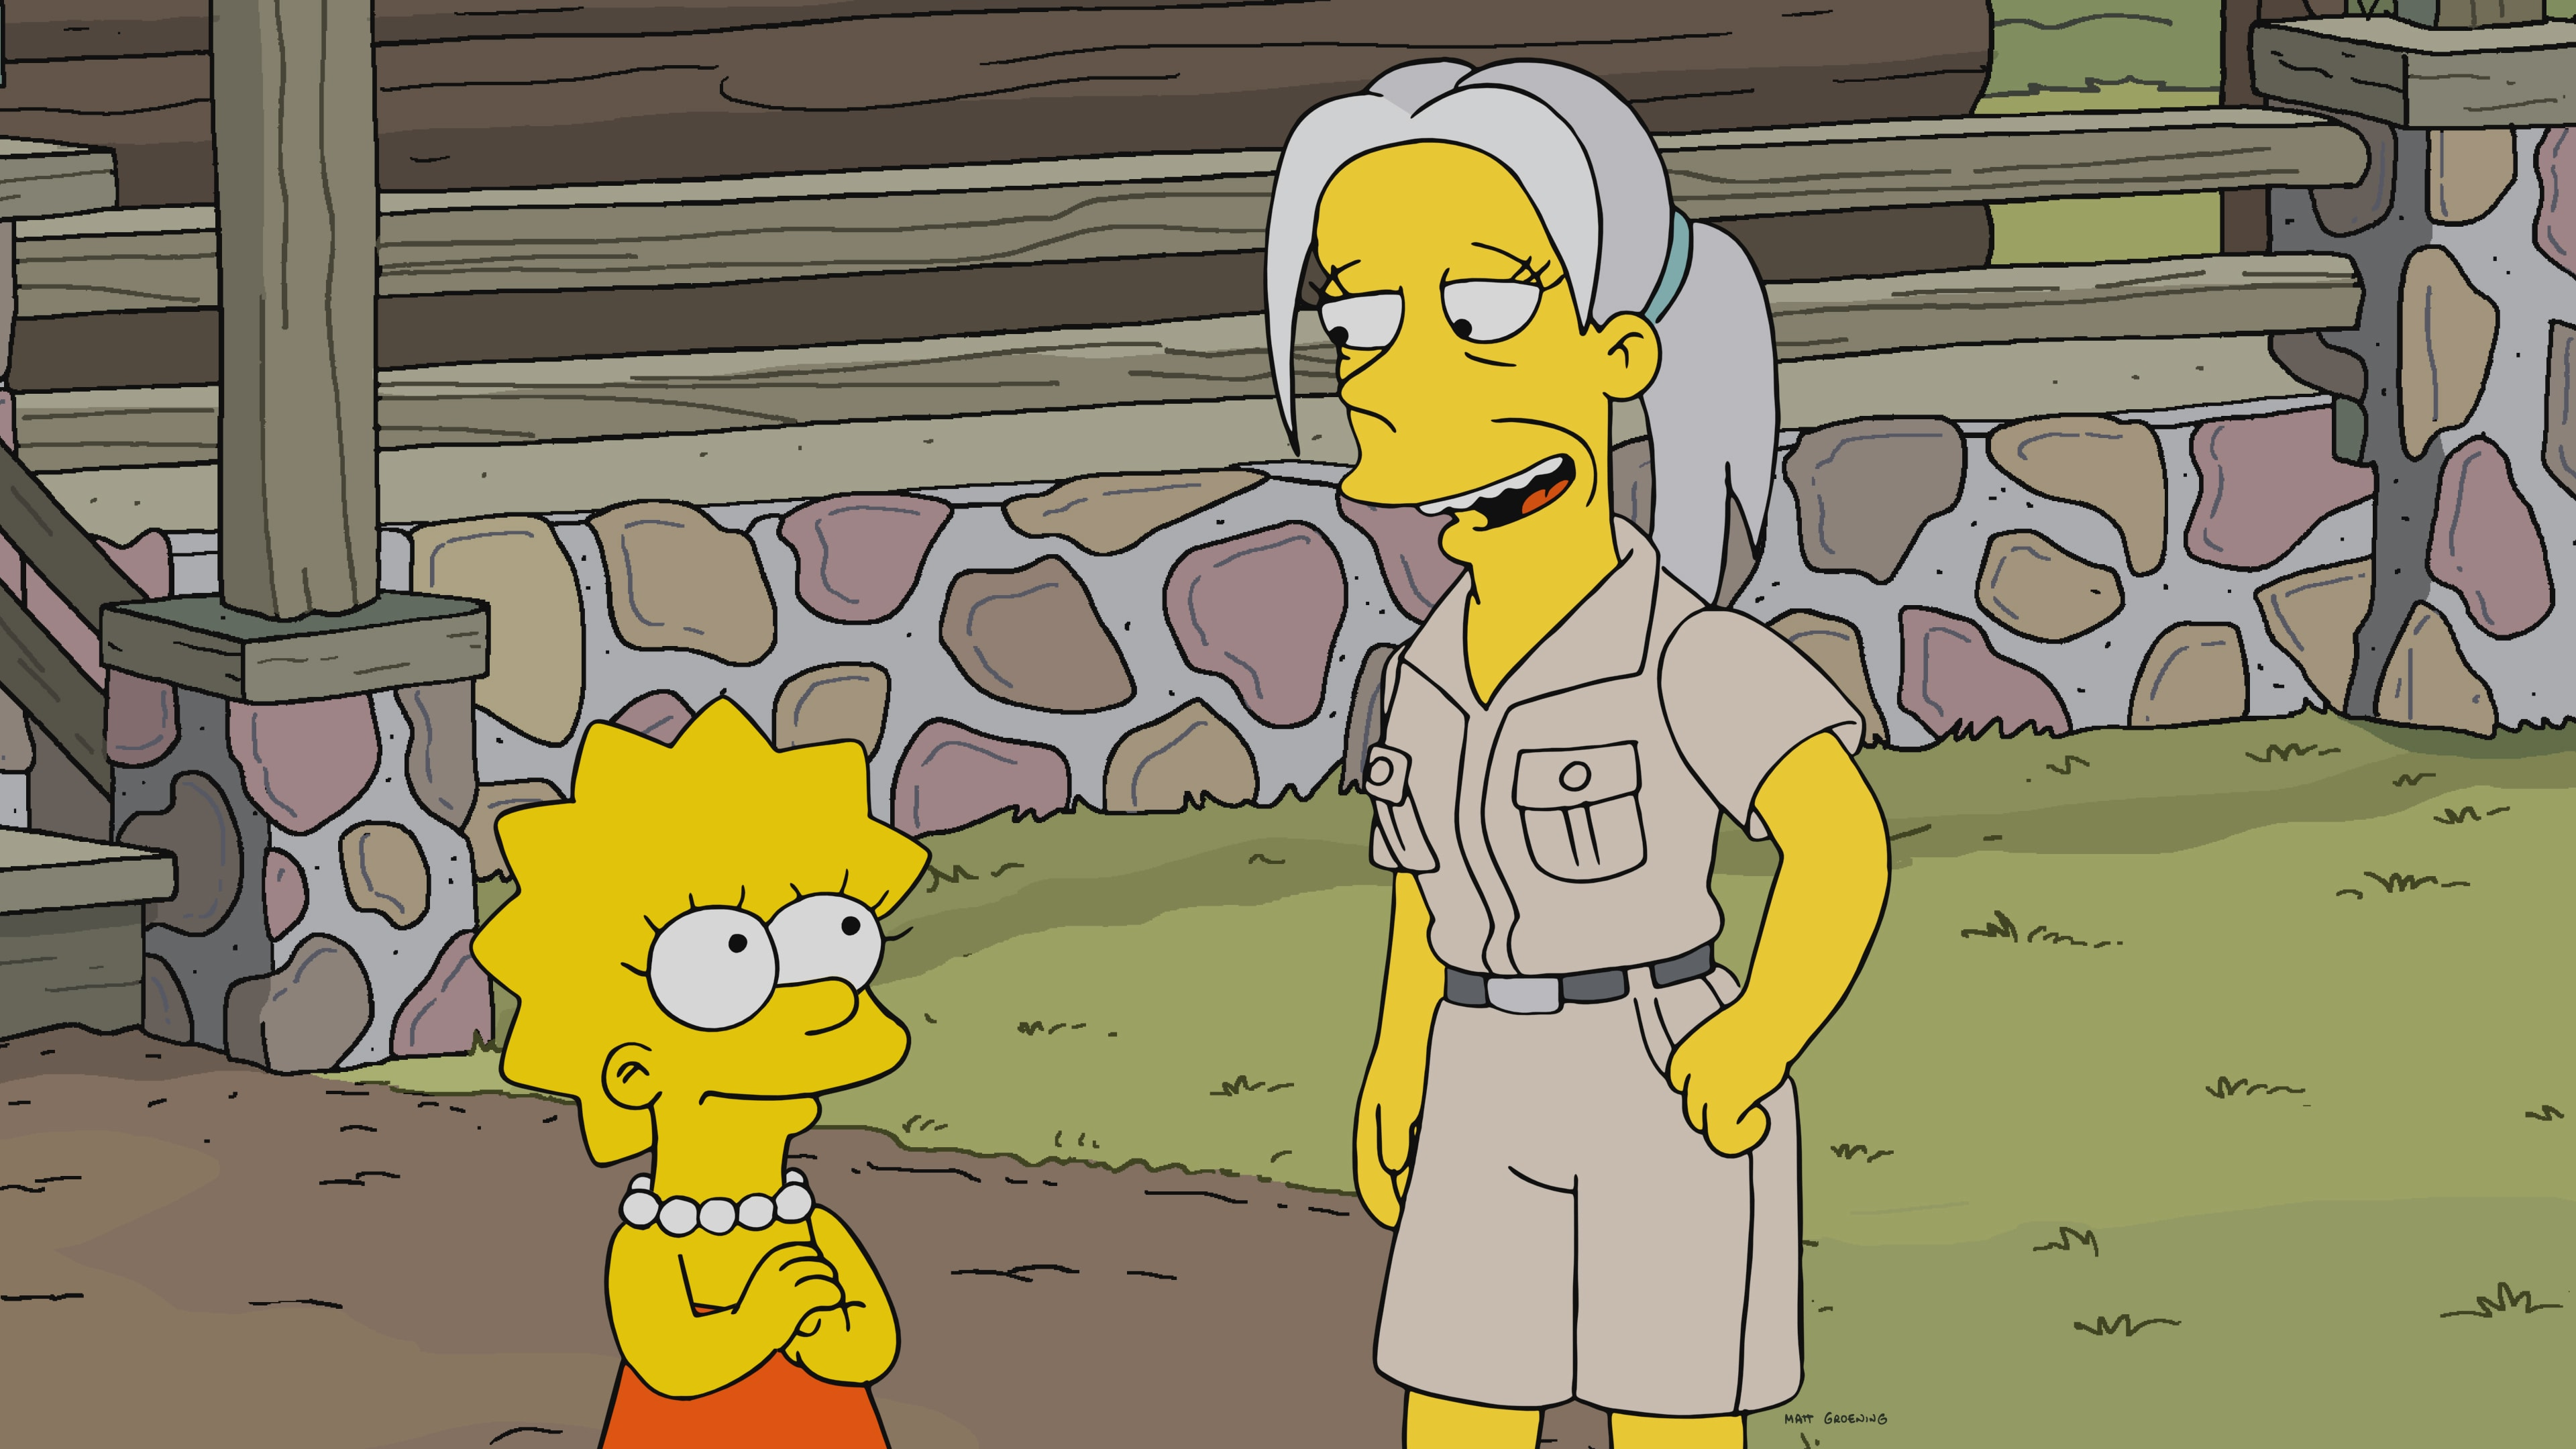 """THE SIMPSONS: After a trip to Aquatraz Water Park, Lisa becomes determined to set free Springfield's most vicious animals in captivity. Meanwhile, Homer fulfills a lifelong dream of buying a boat, and quickly realizes boat ownership sucks in the """"Gorillas on the Mast"""" episode of THE SIMPSONS."""